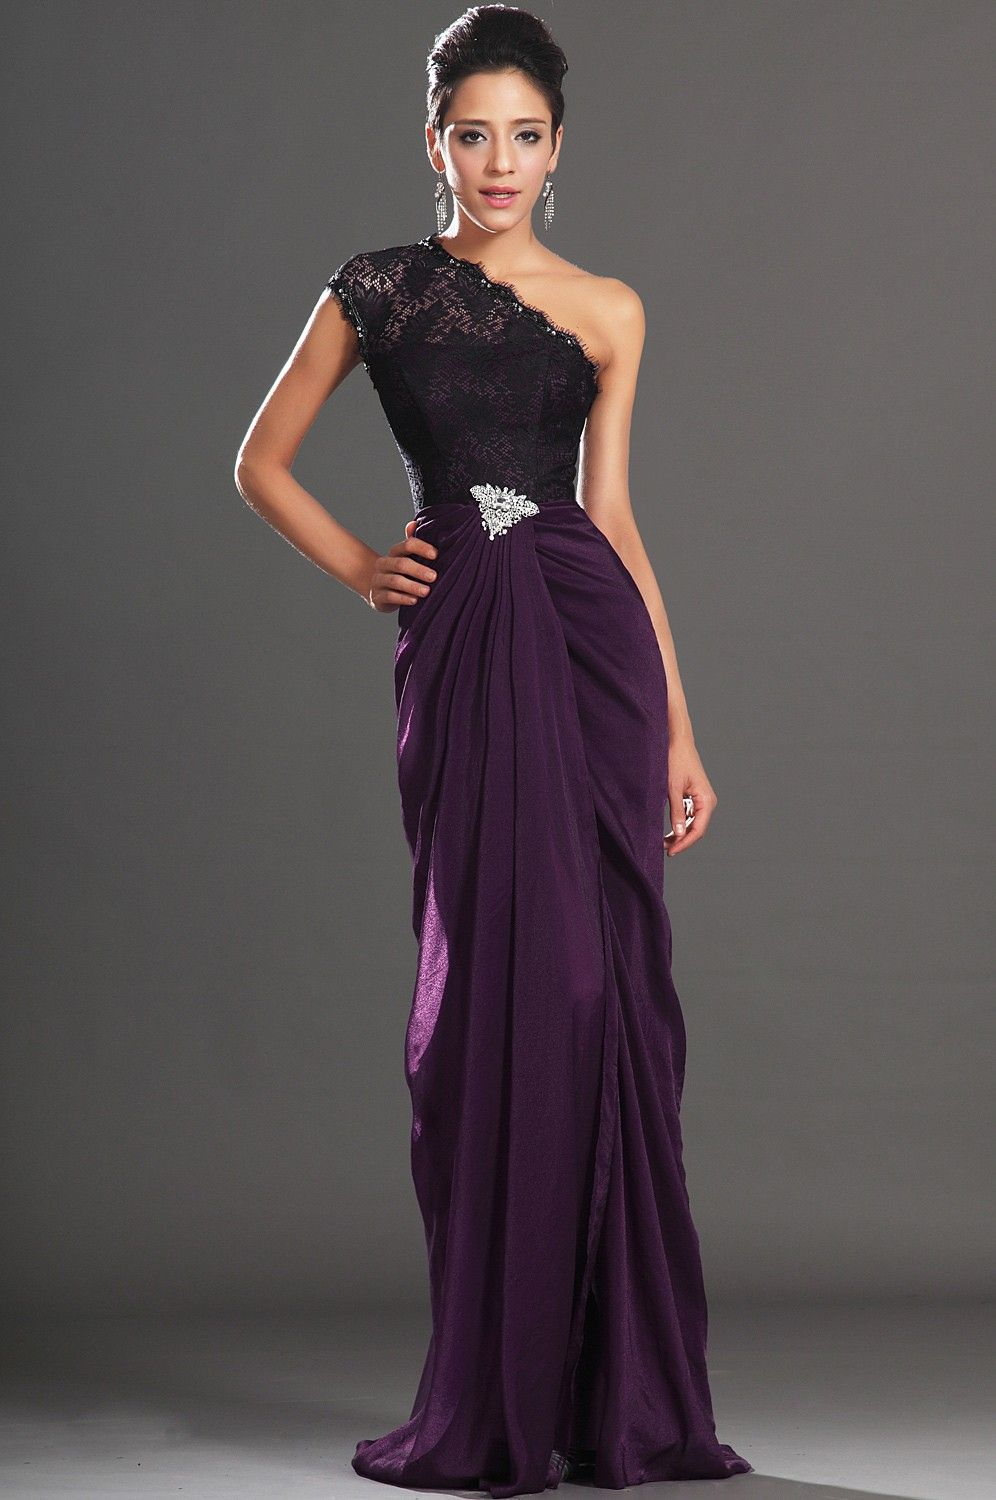 hdimagesofeveningdress Evening Gown Pinterest Gowns